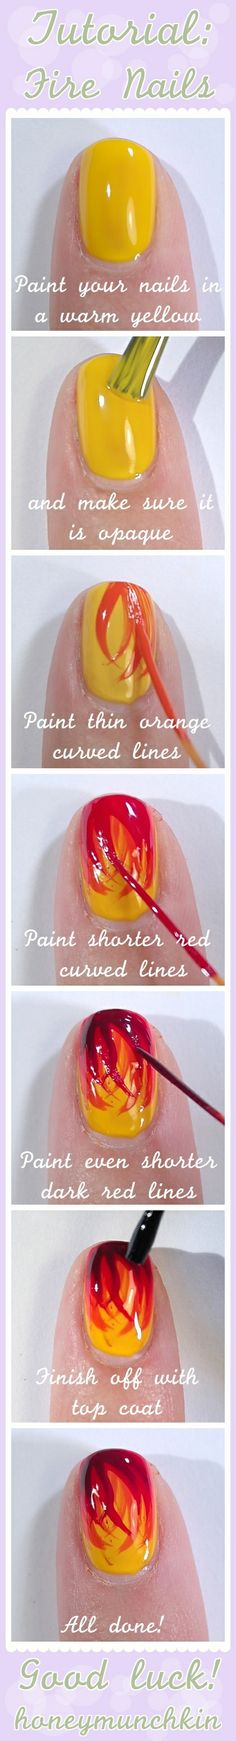 DIY Fire Nail Art DIY Projects | UsefulDIY.com